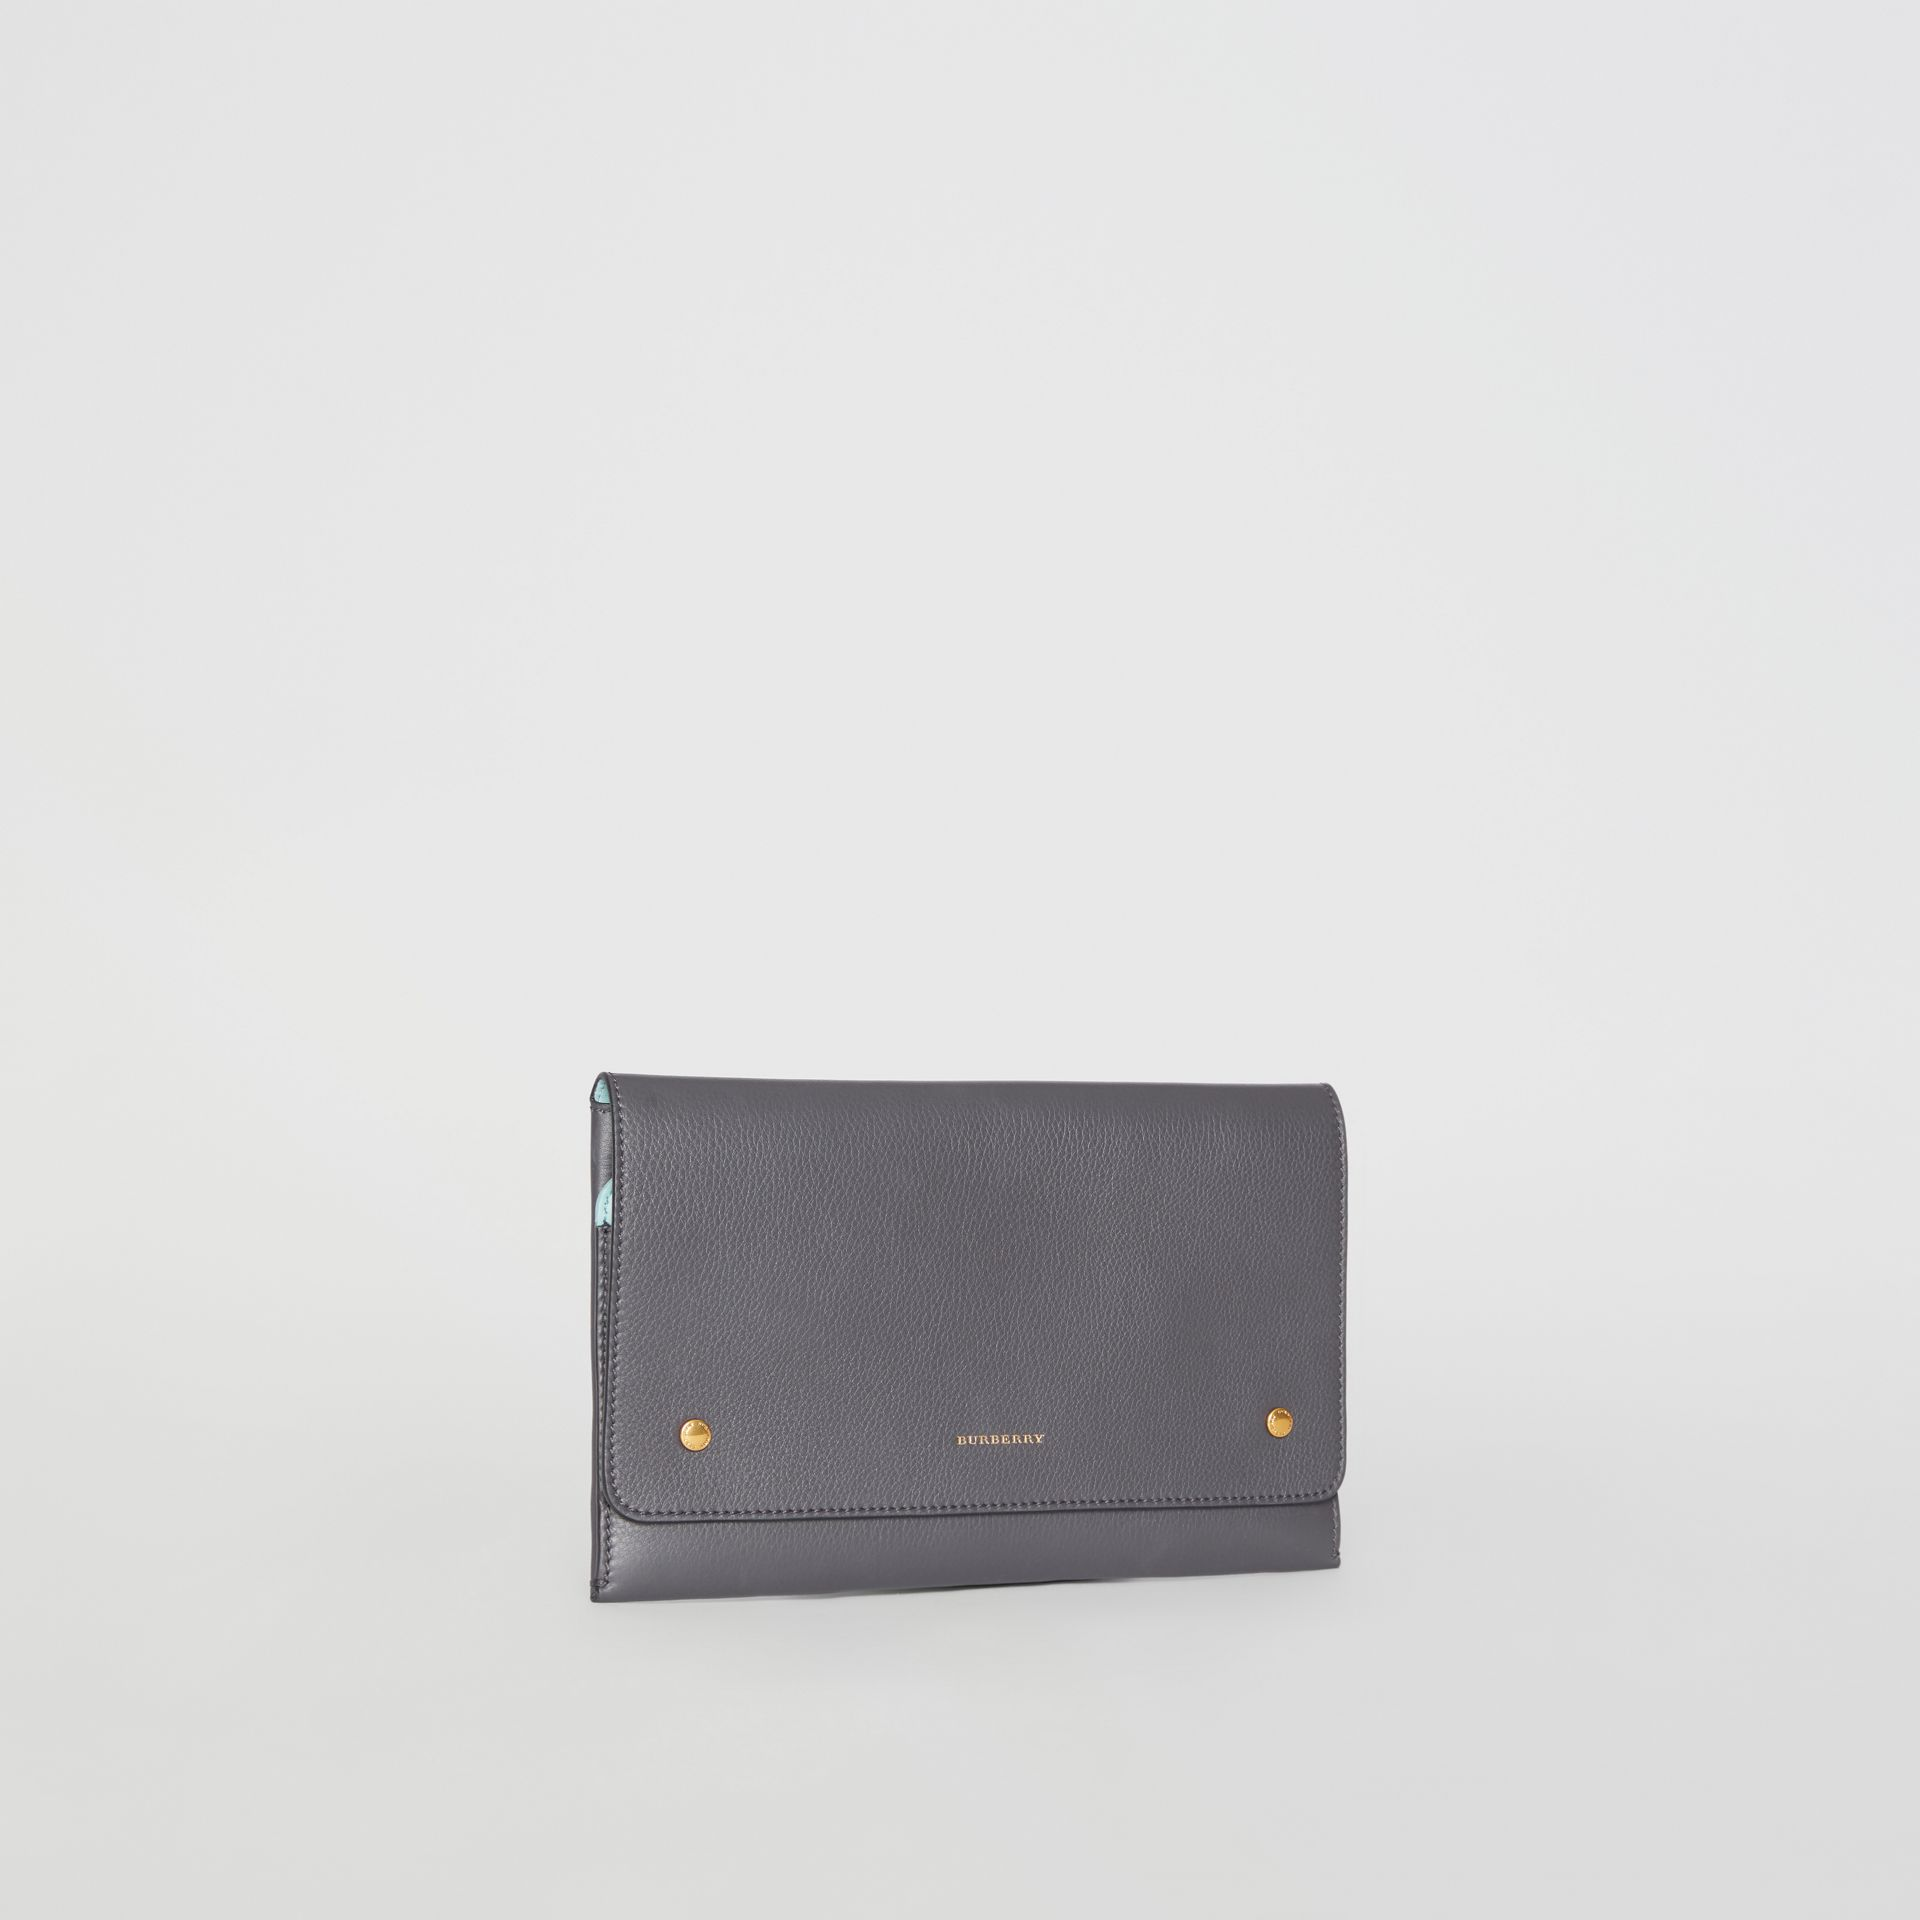 Clutch wristlet en cuir bicolore (Gris Anthracite) - Femme | Burberry - photo de la galerie 6